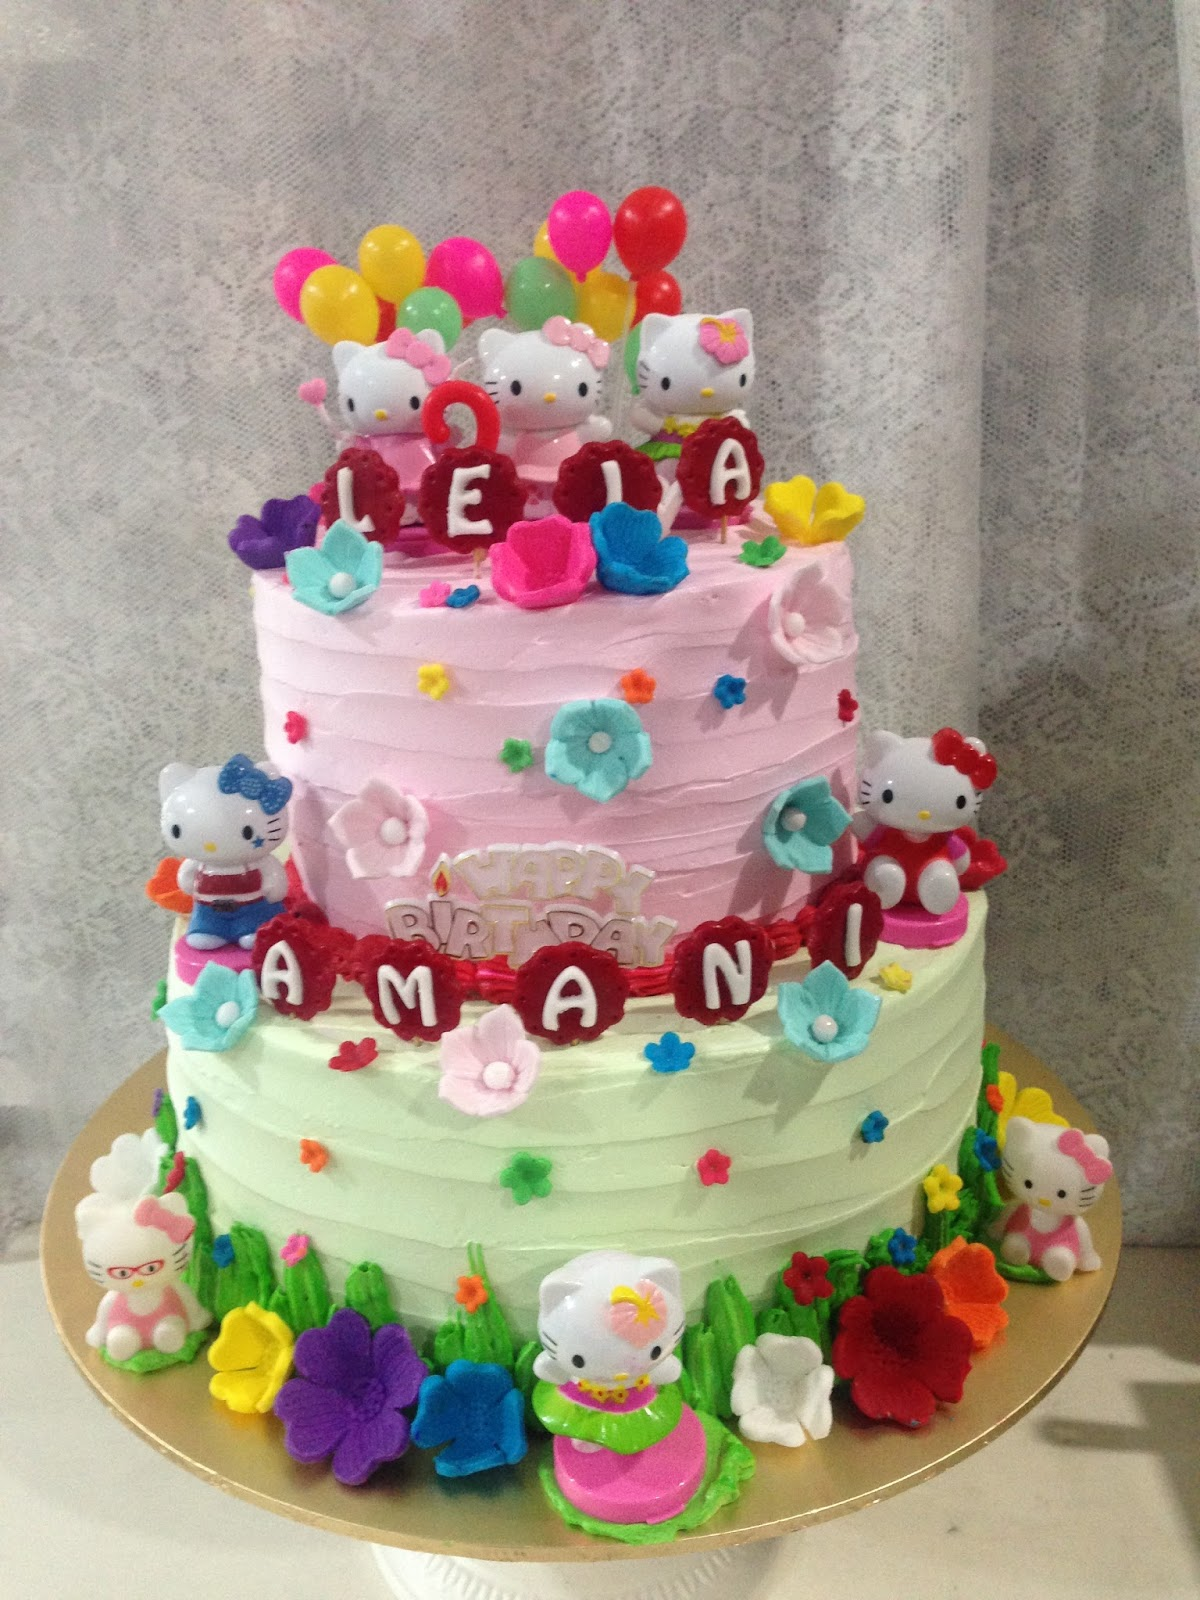 ninie cakes house: Hello Kitty Cake Design